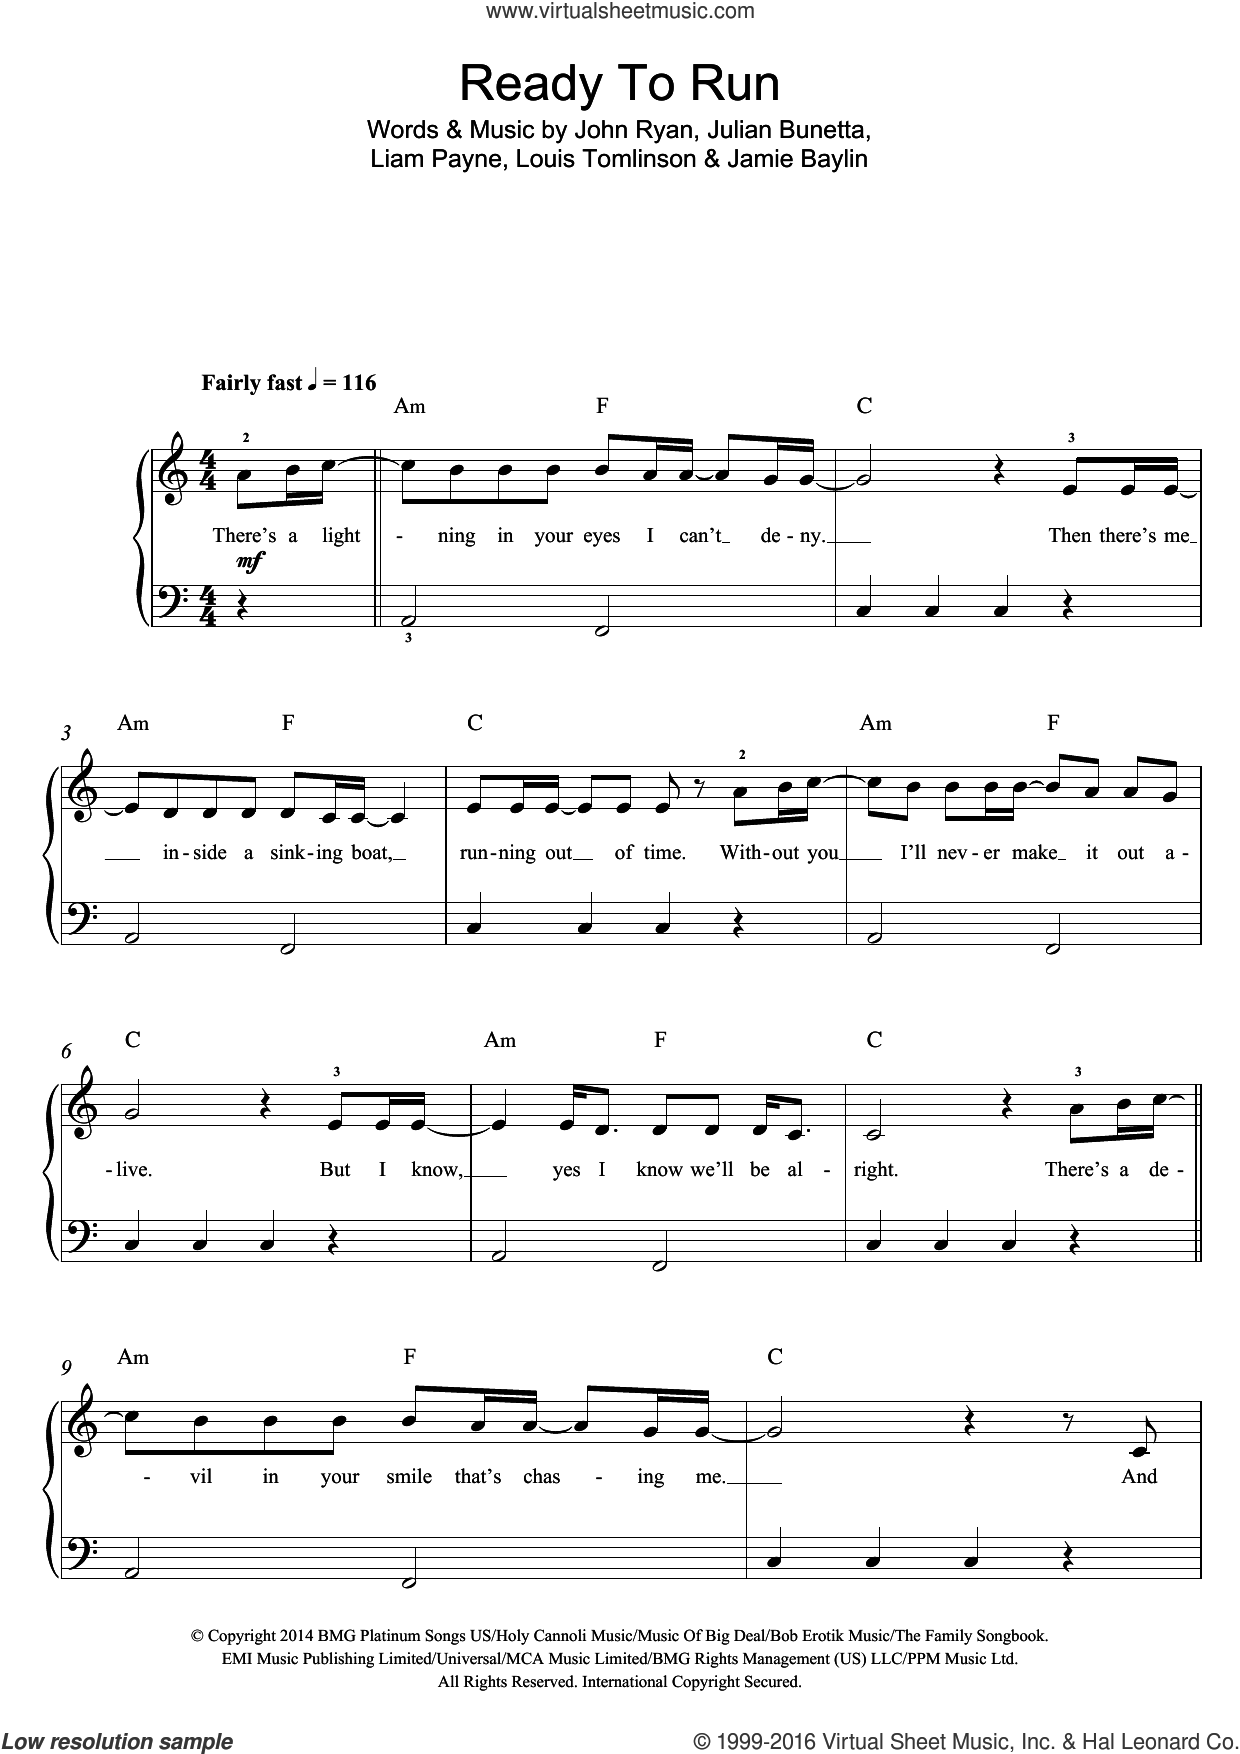 Ready To Run sheet music for piano solo by Jamie Baylin, One Direction, John Ryan, Julian Bunetta and Louis Tomlinson. Score Image Preview.